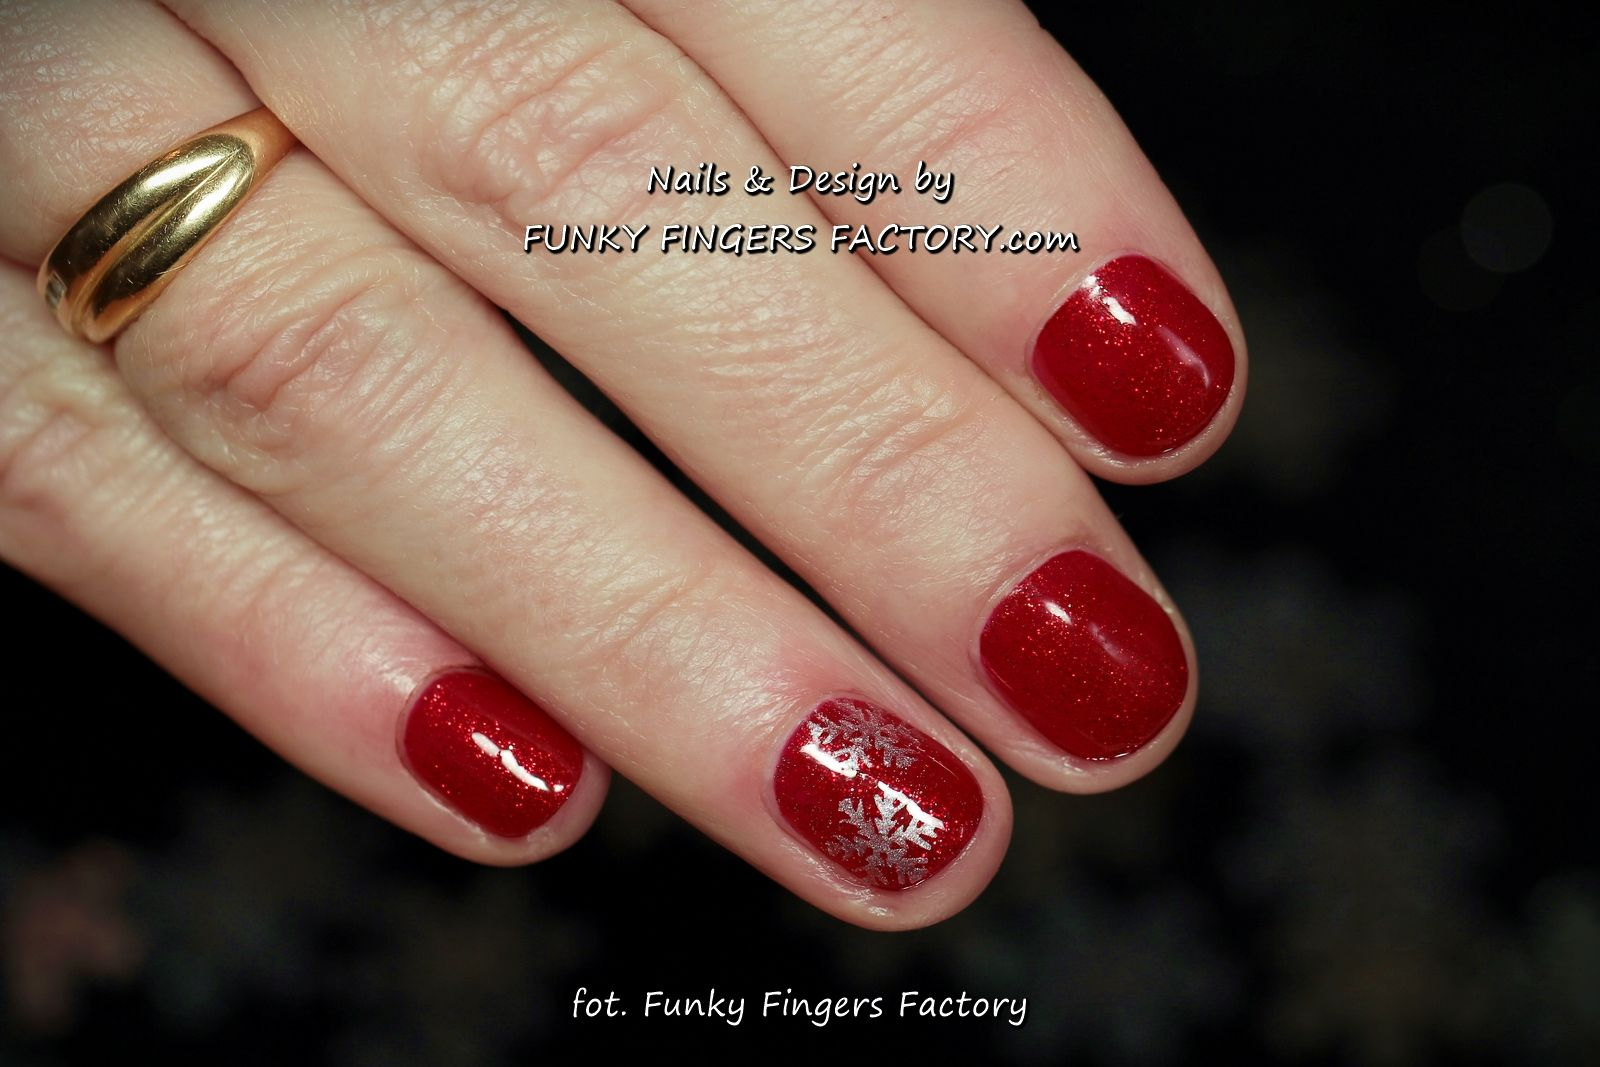 Gelish Red Glitter Snowflakes on short nails by www.funkyfingersfactory.com